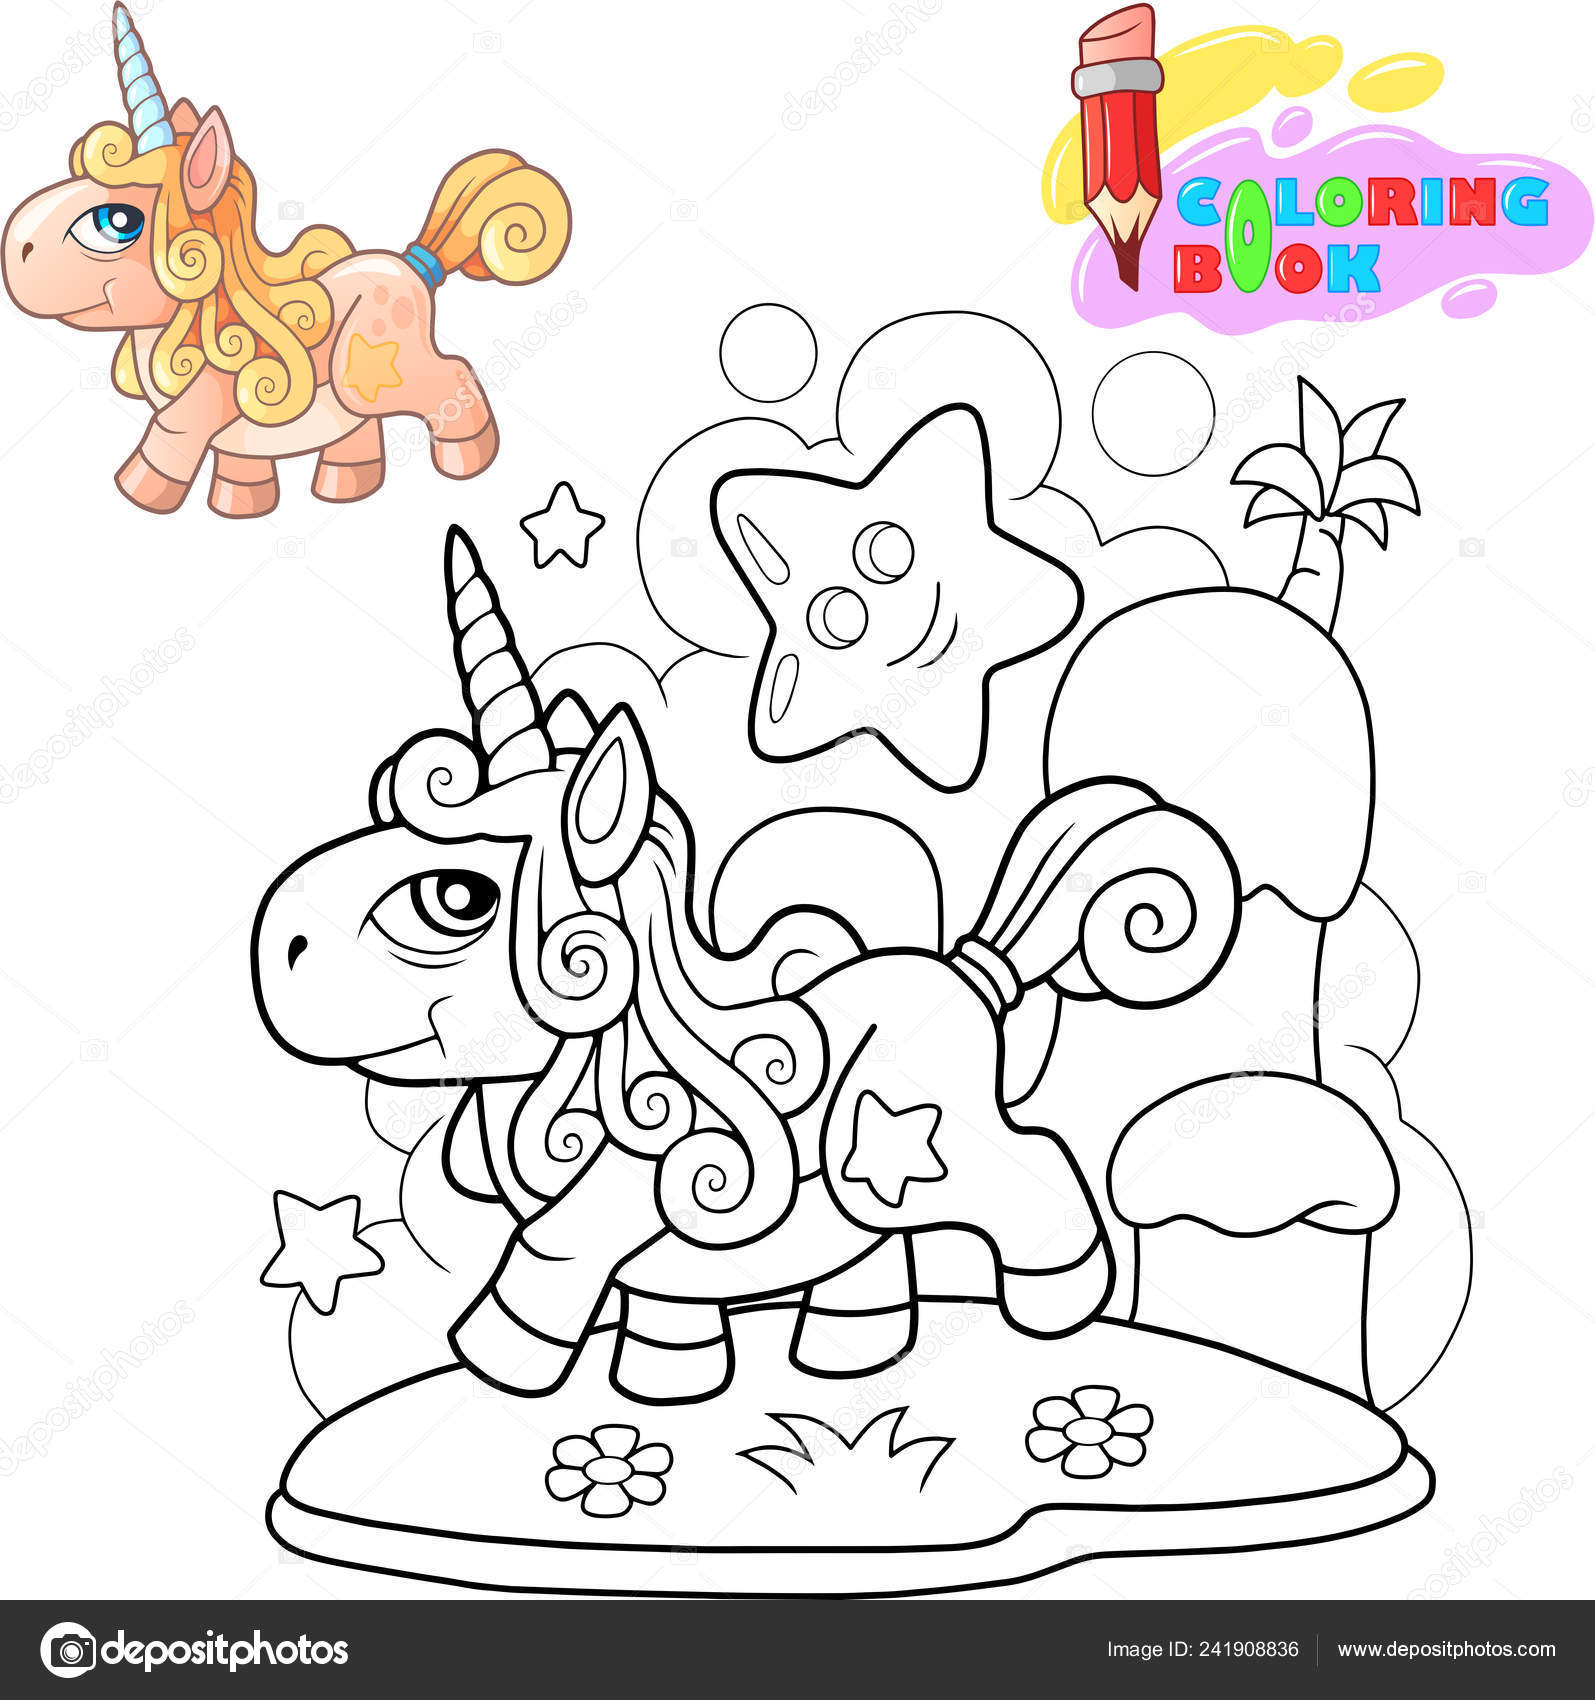 Coloriage Petit Dessin Anime.Petit Dessin Anime Licorne Mignon Poney Coloriages Illustration